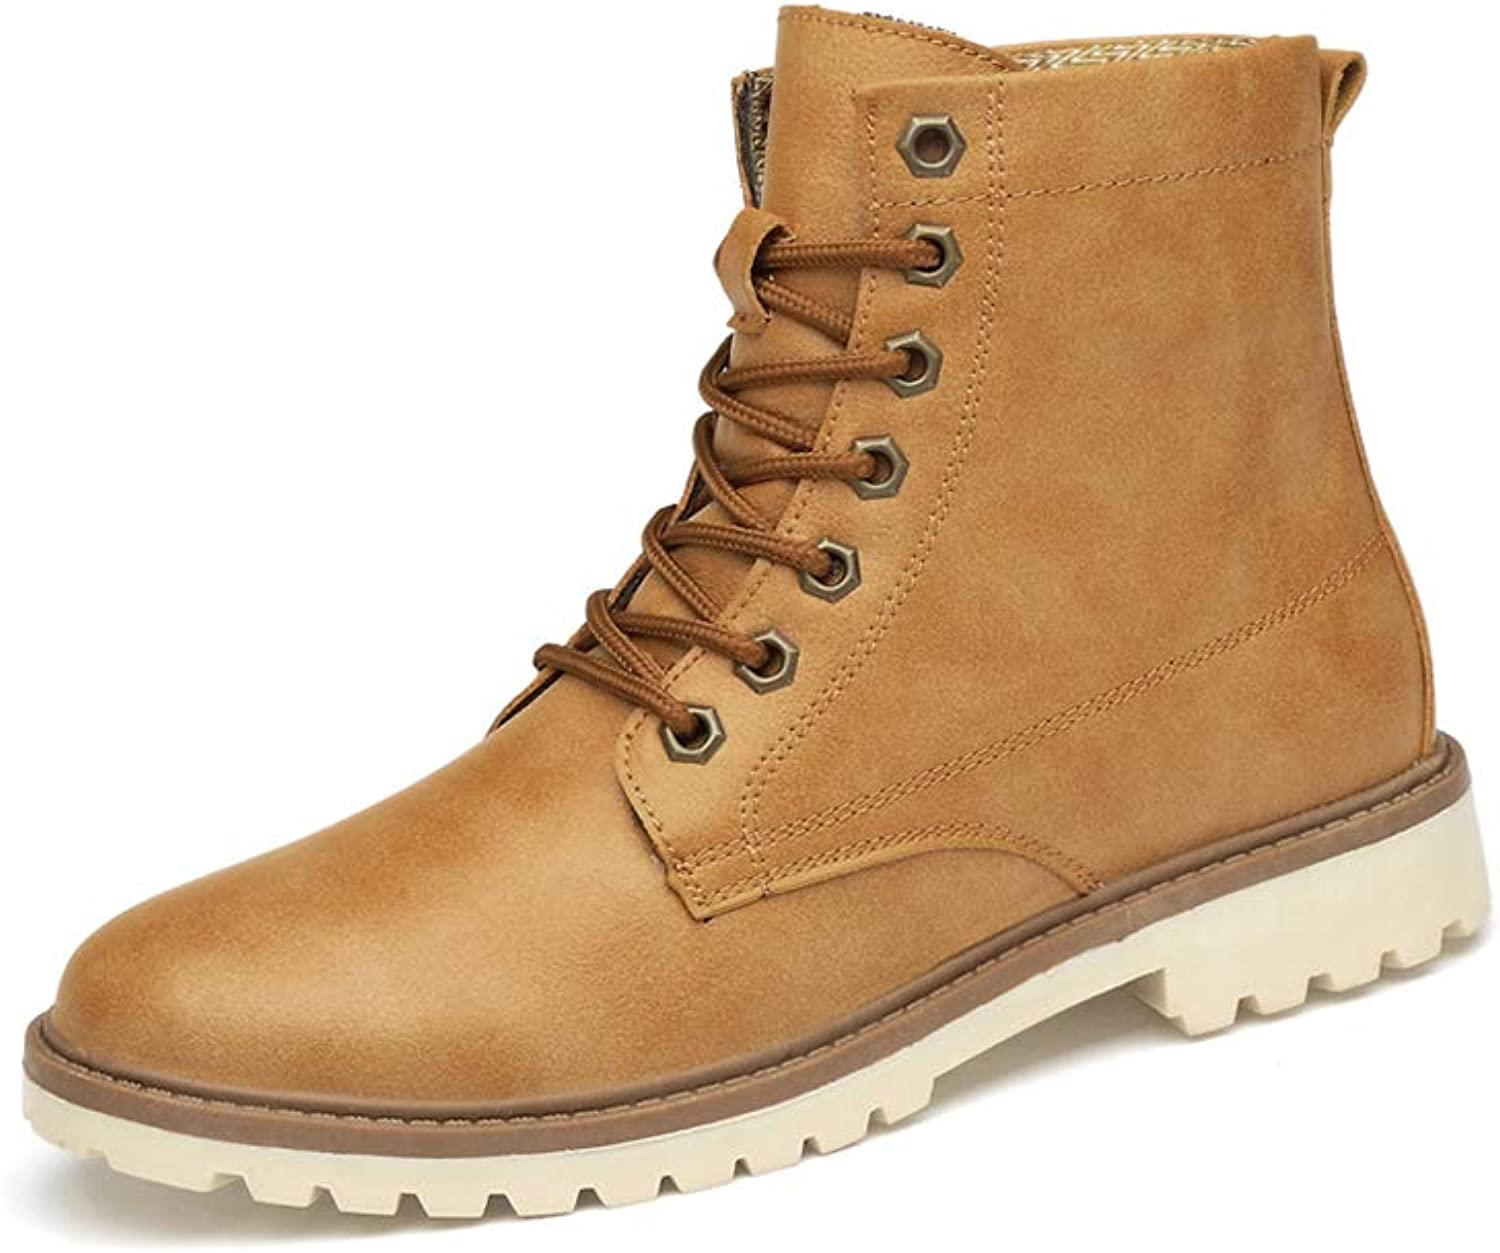 Men's Retro British style Keep warm Martin boots Non-slip Breathable High help Bare boots Waterproof Tooling shoes